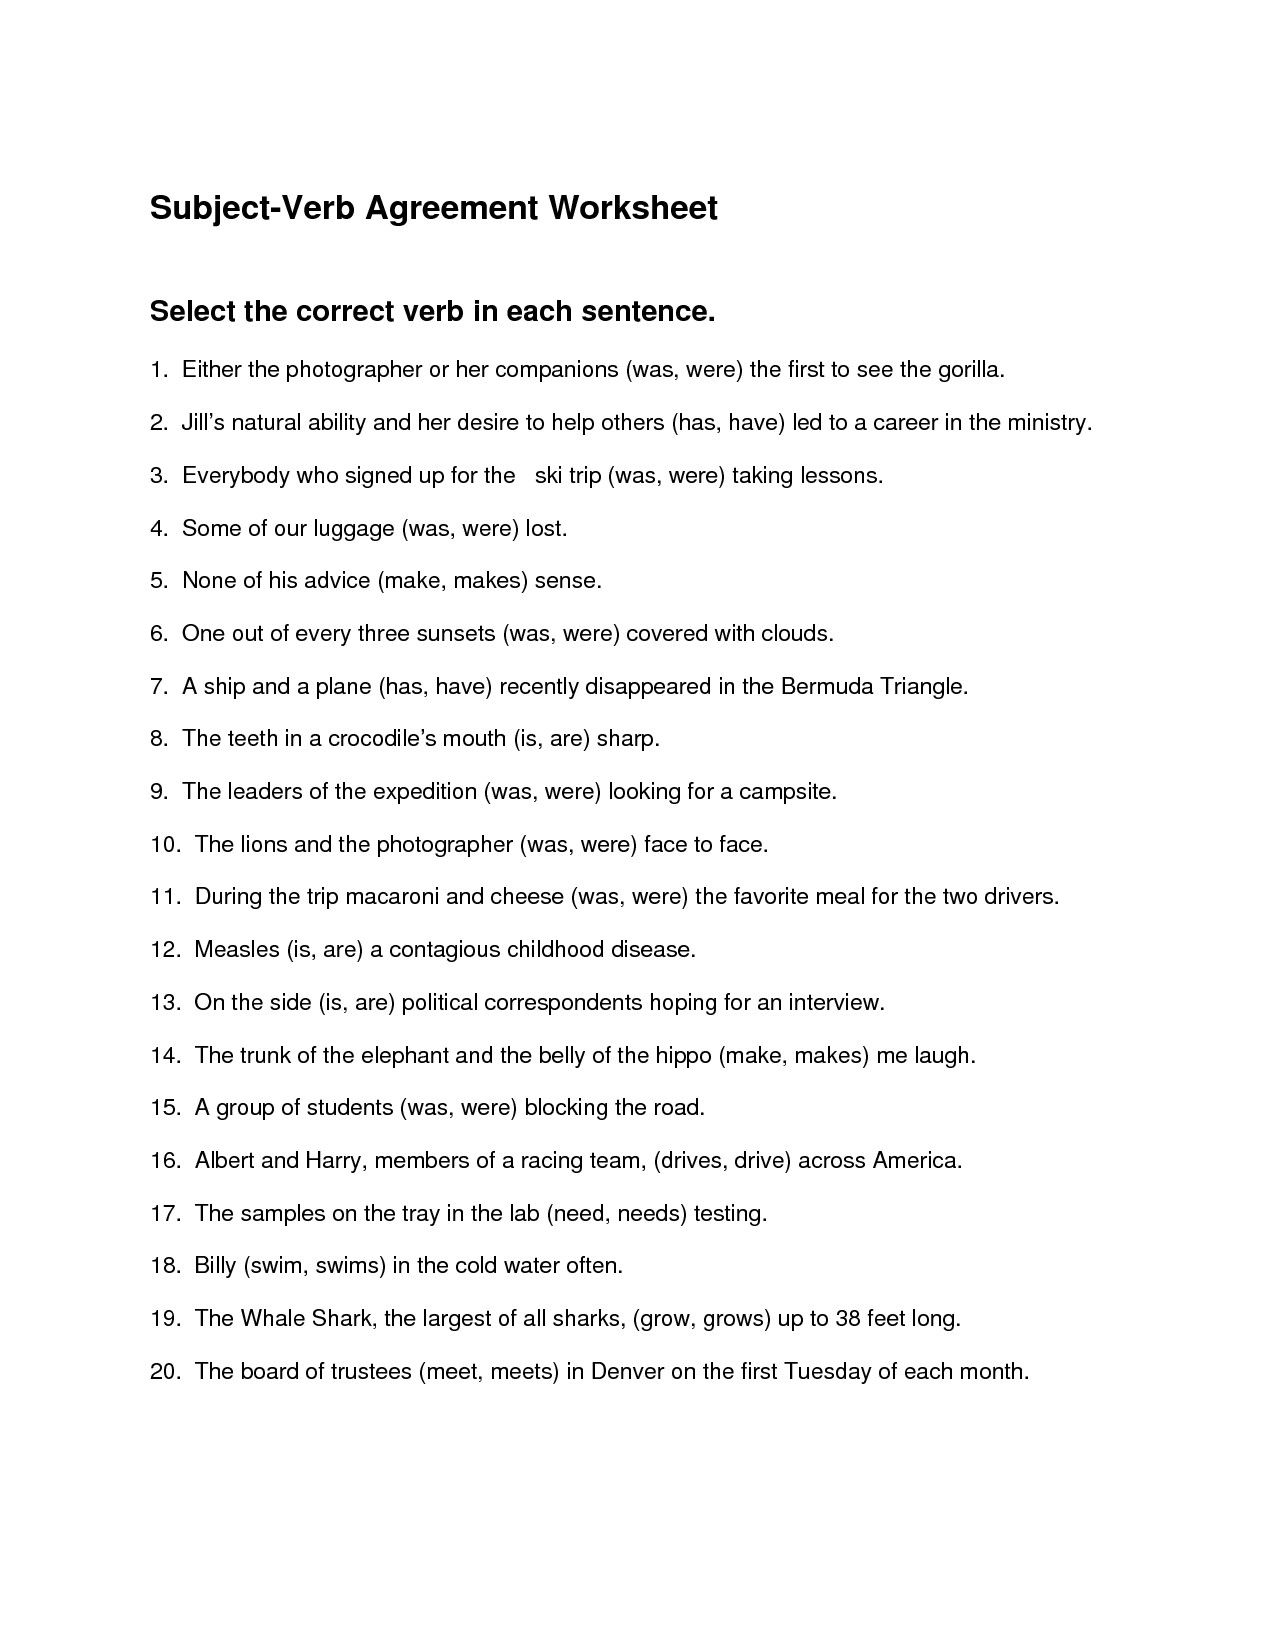 Verb Worksheets 5th Grade id#0 Worksheet   Grammar worksheets [ 1650 x 1275 Pixel ]